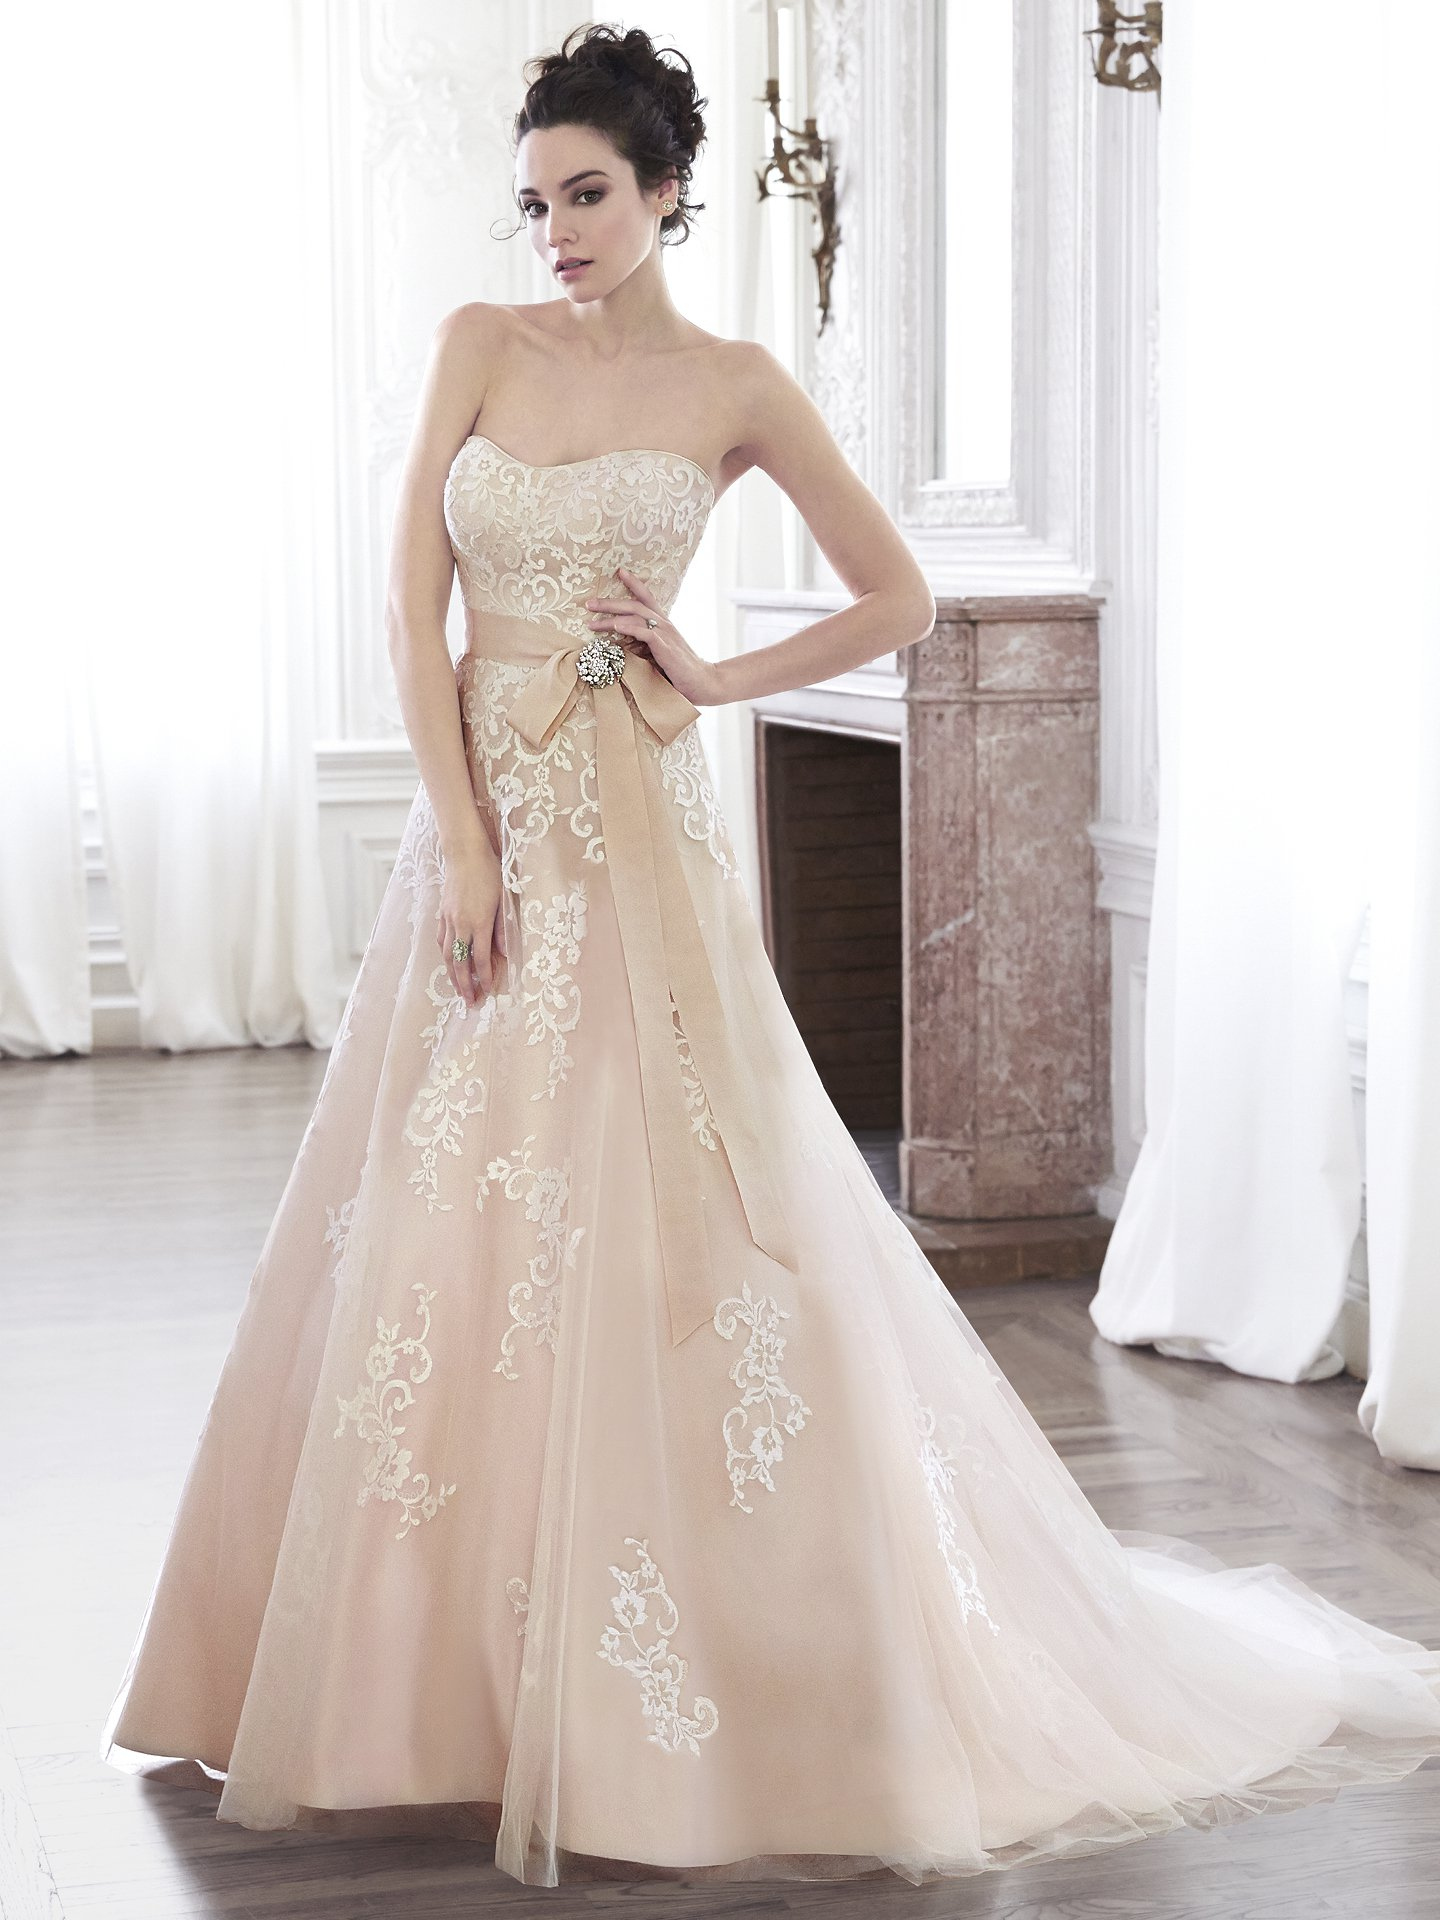 colored-wedding-dress-5b